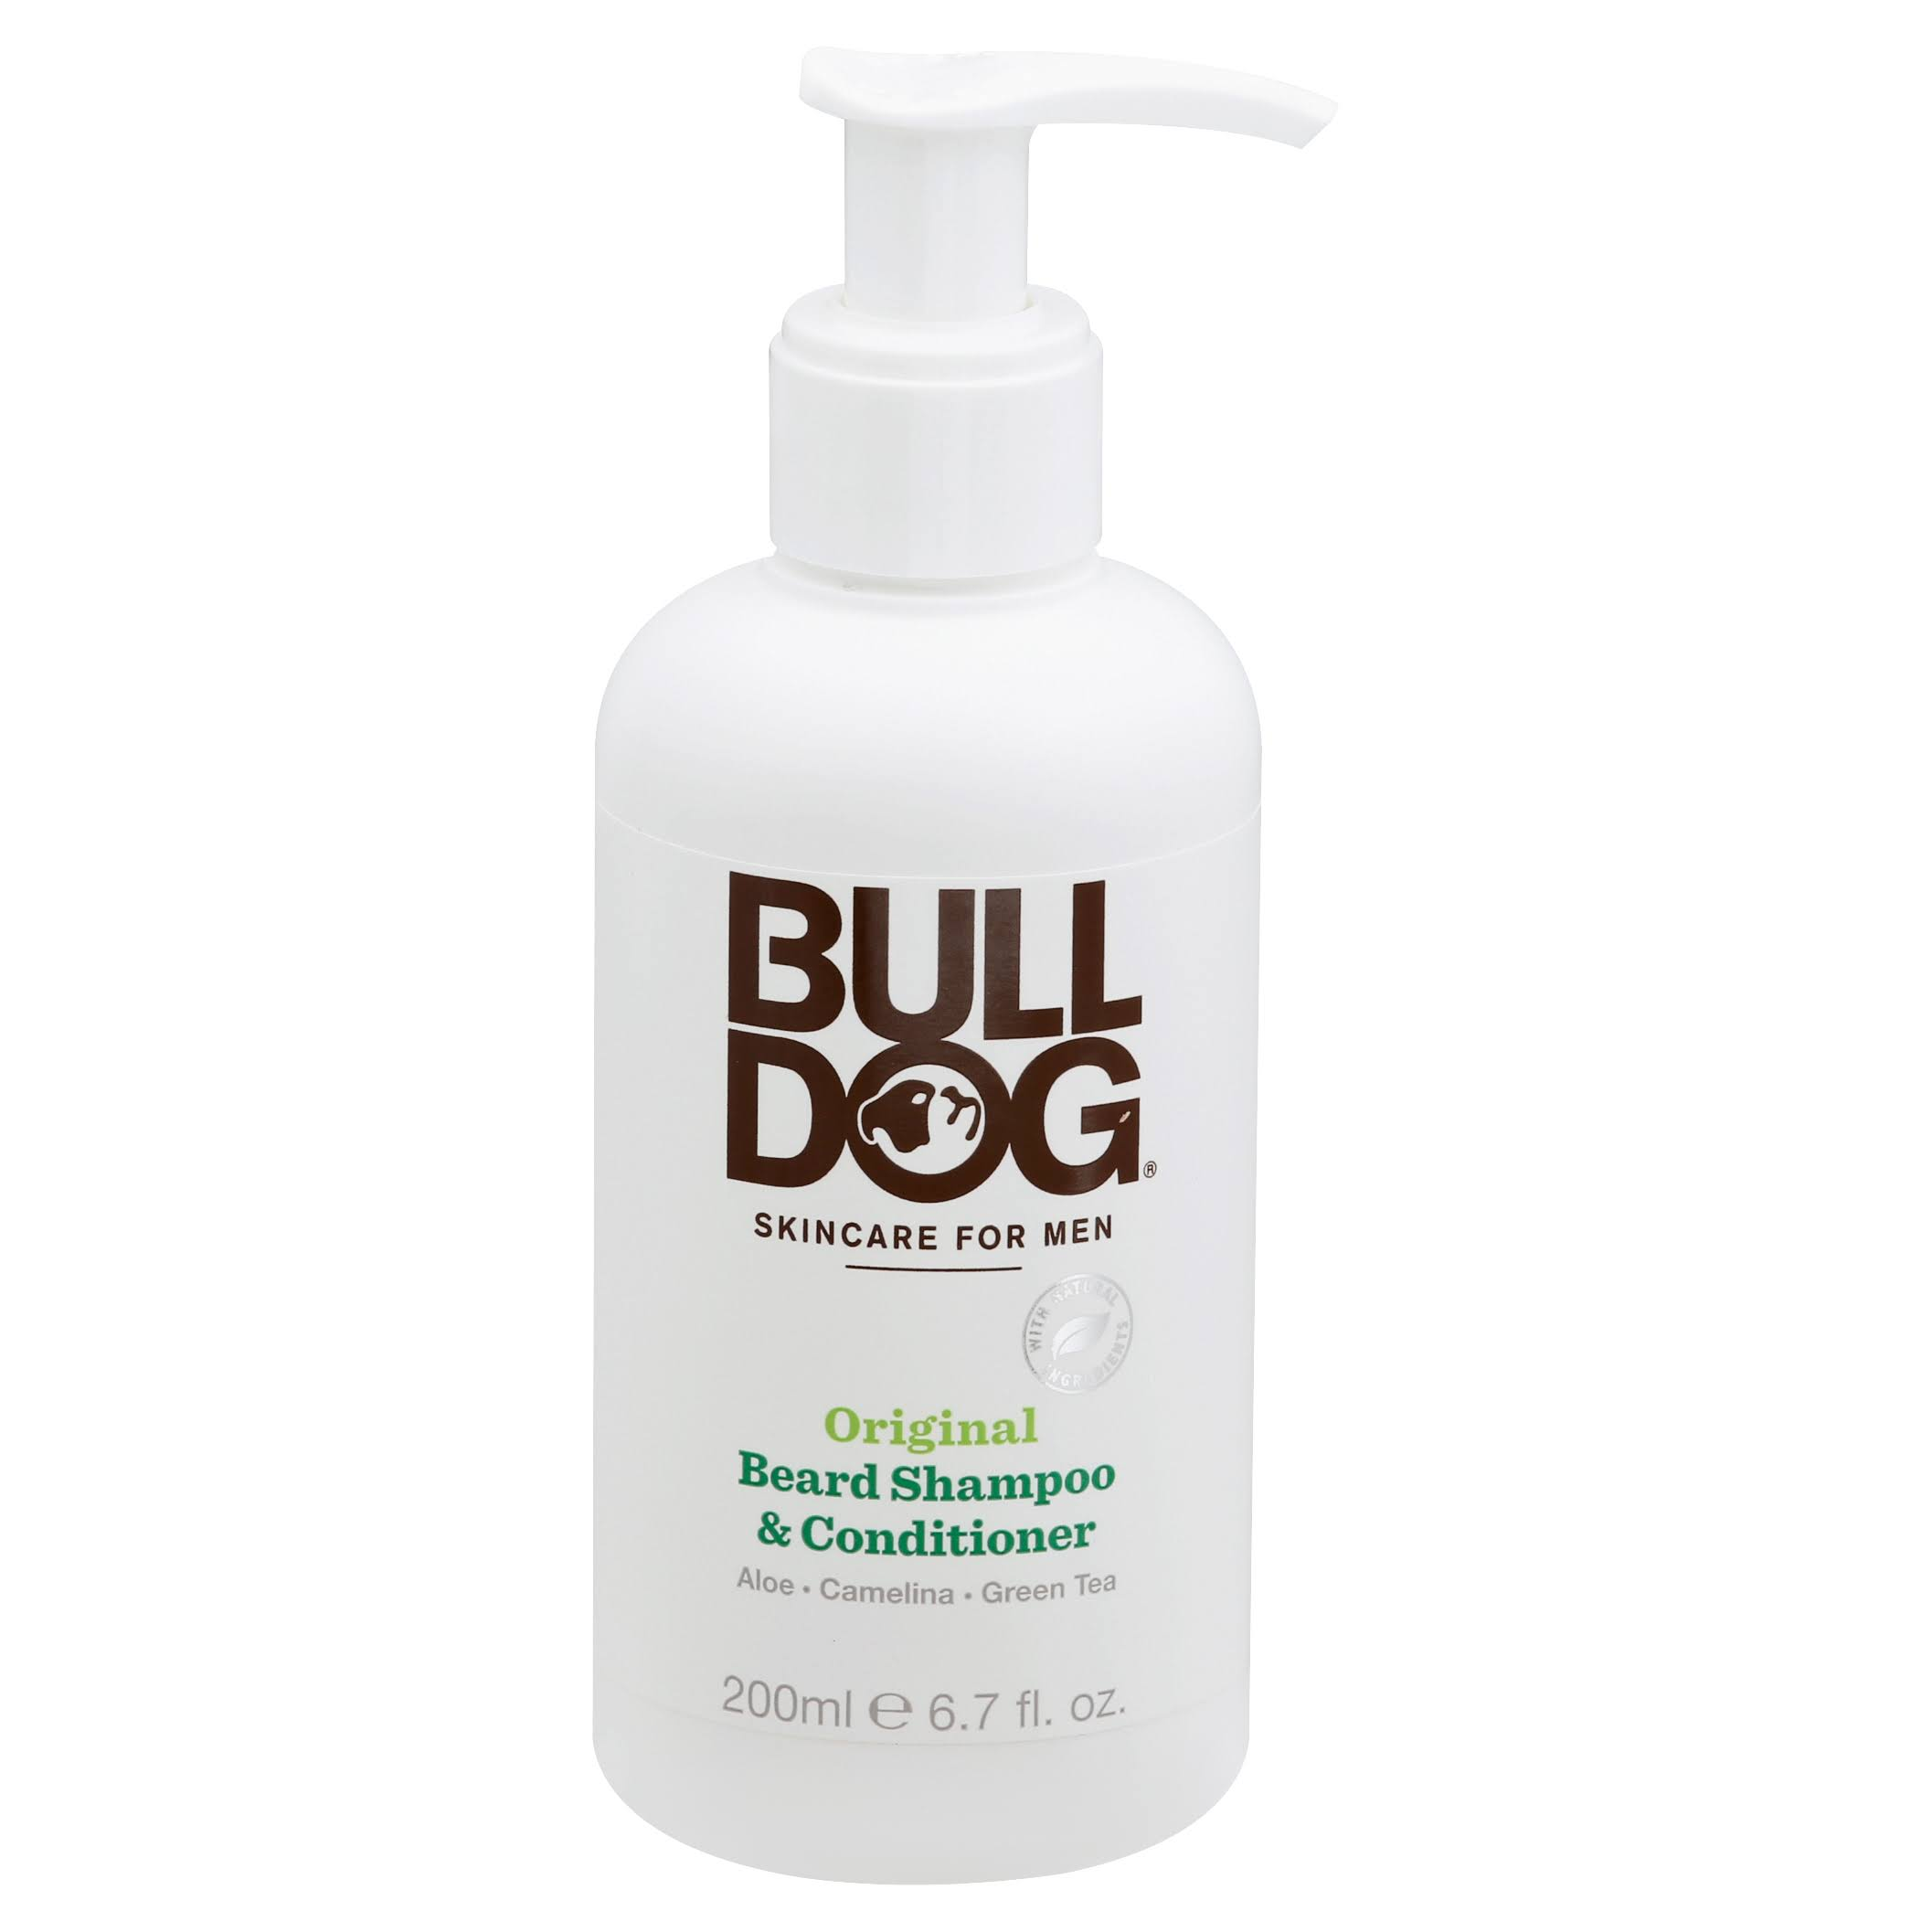 Bulldog Men's Skincare and Grooming Original After Shave Balm - 100ml